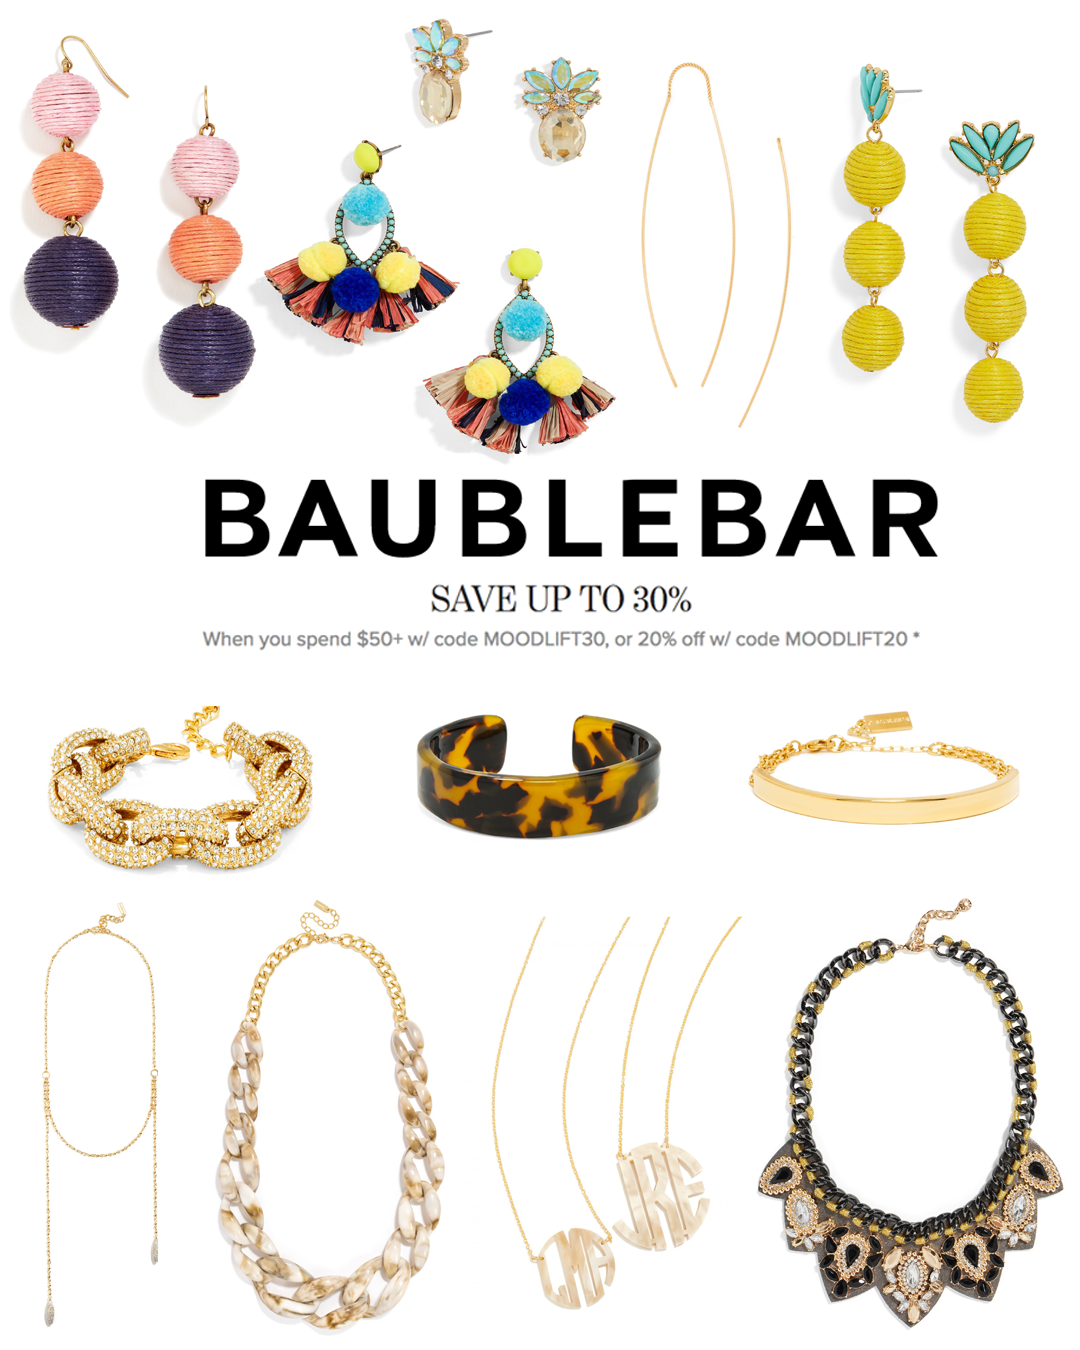 Baublebar Sale Collage Angela Lanter Hello Gorgeous